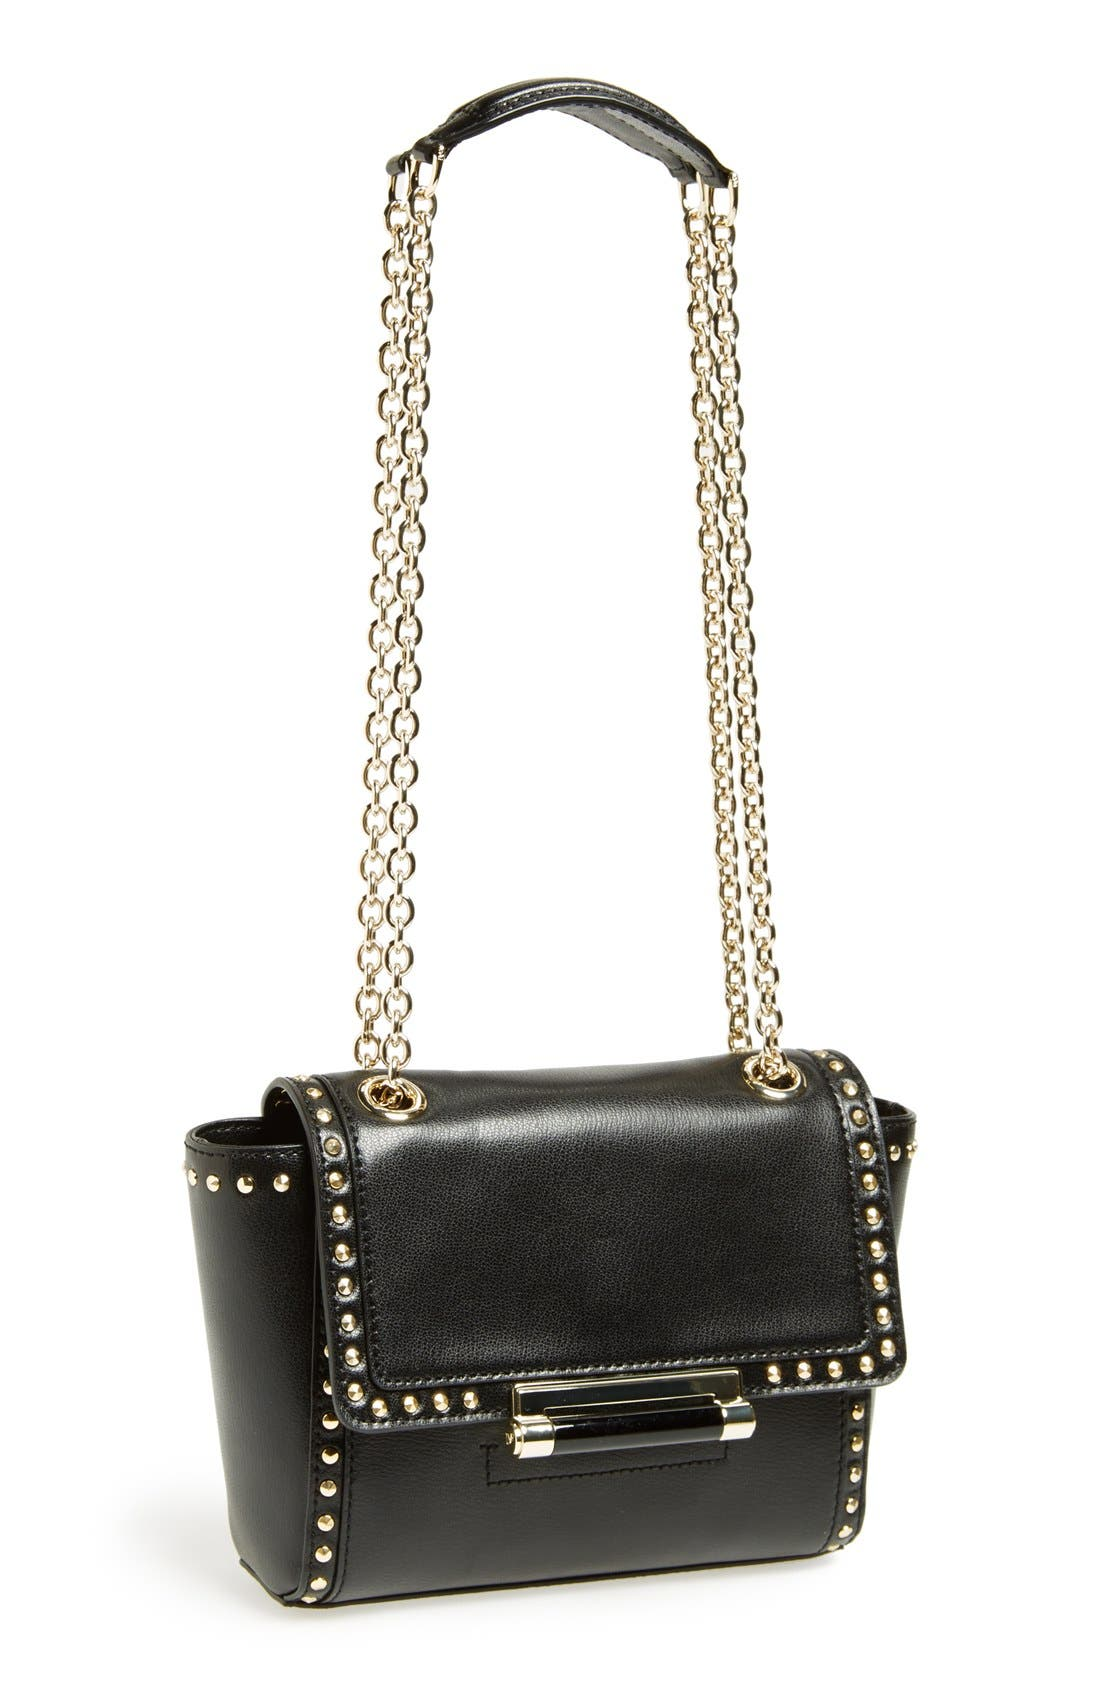 Alternate Image 1 Selected - Diane Von Furstenberg '440 - Mini' Stud Leather Crossbody Bag